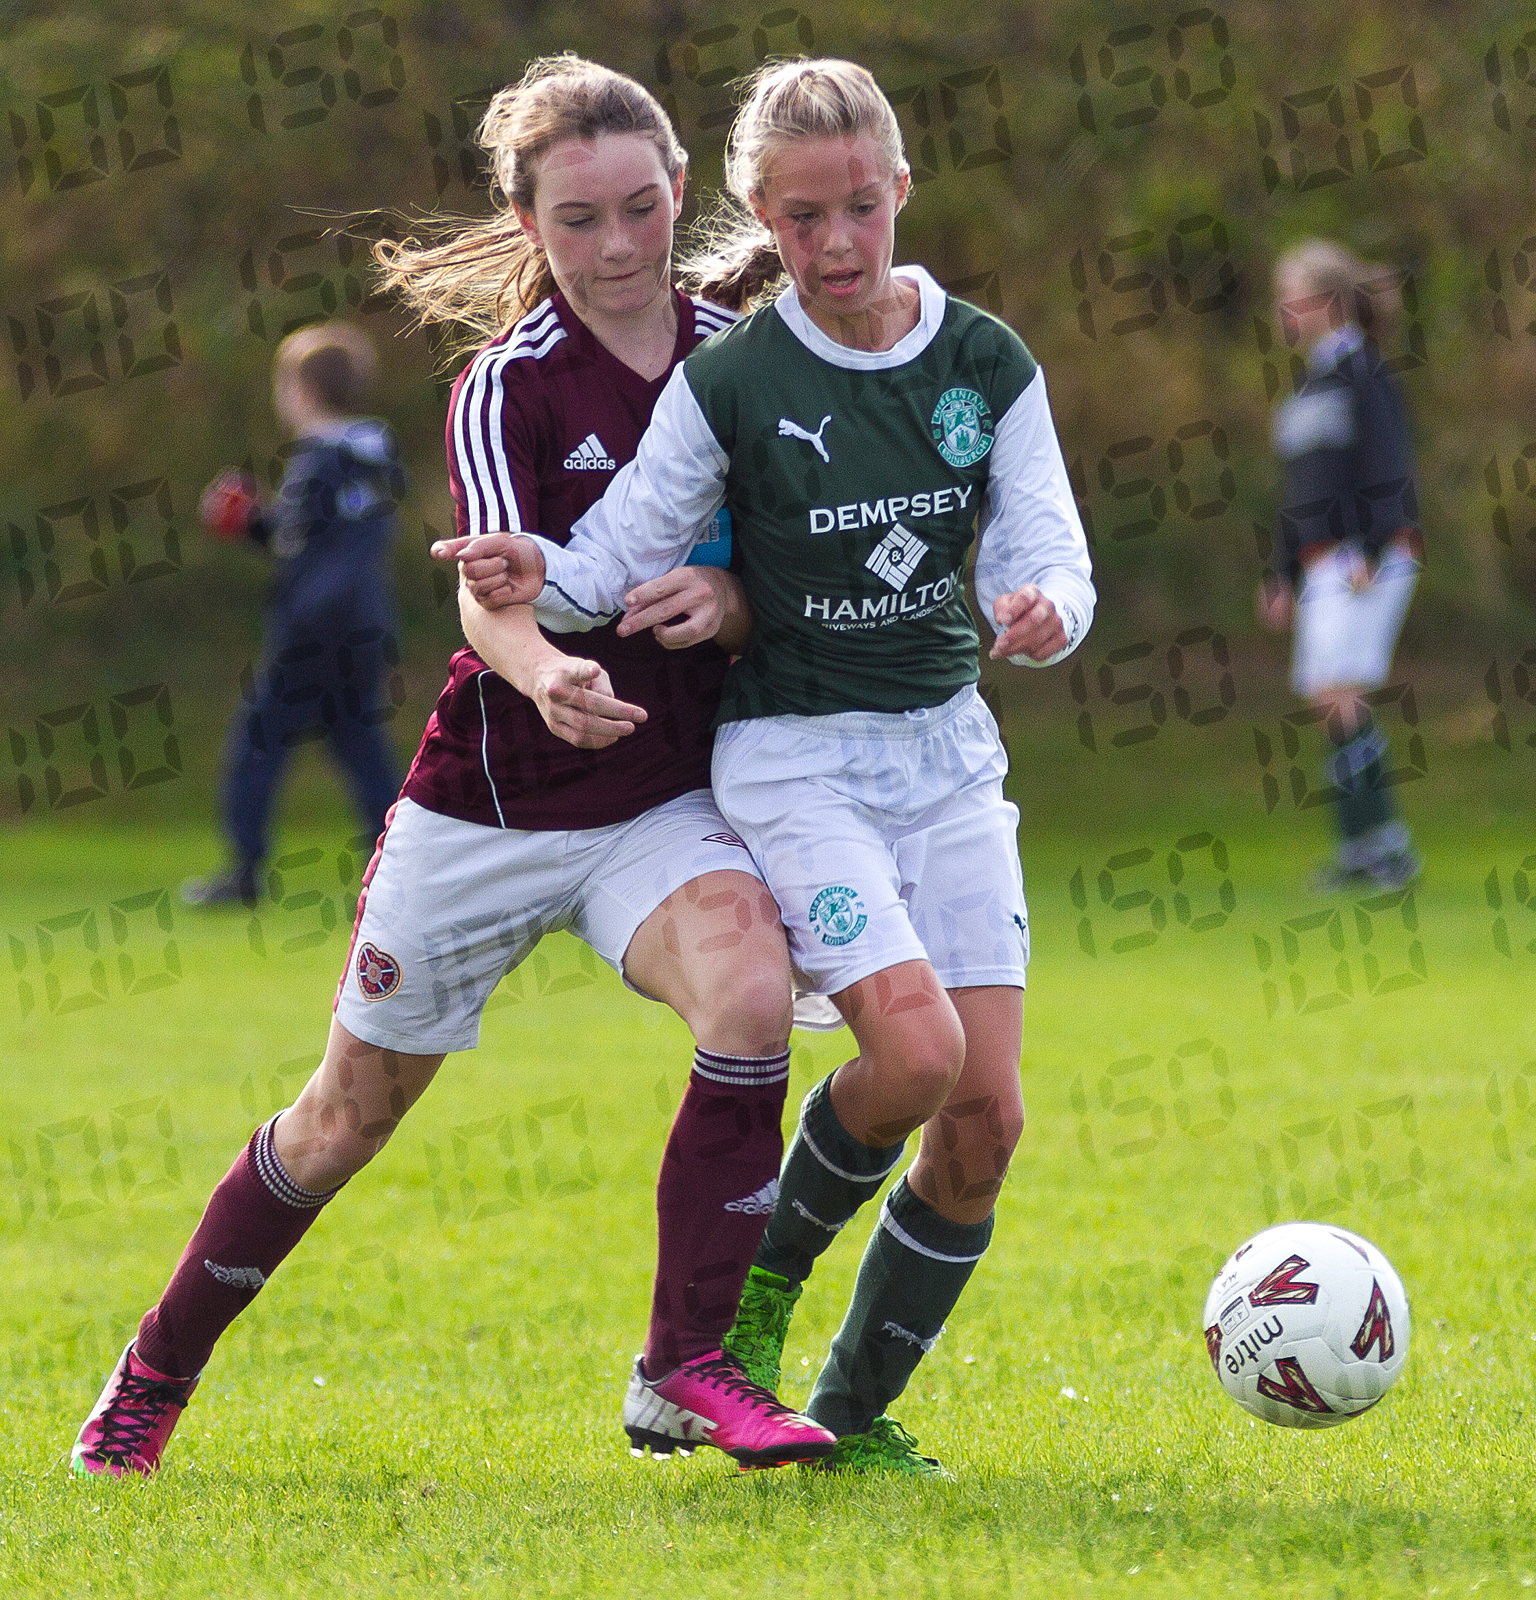 Hibs_v_Hearts_girls_13s-16.jpg